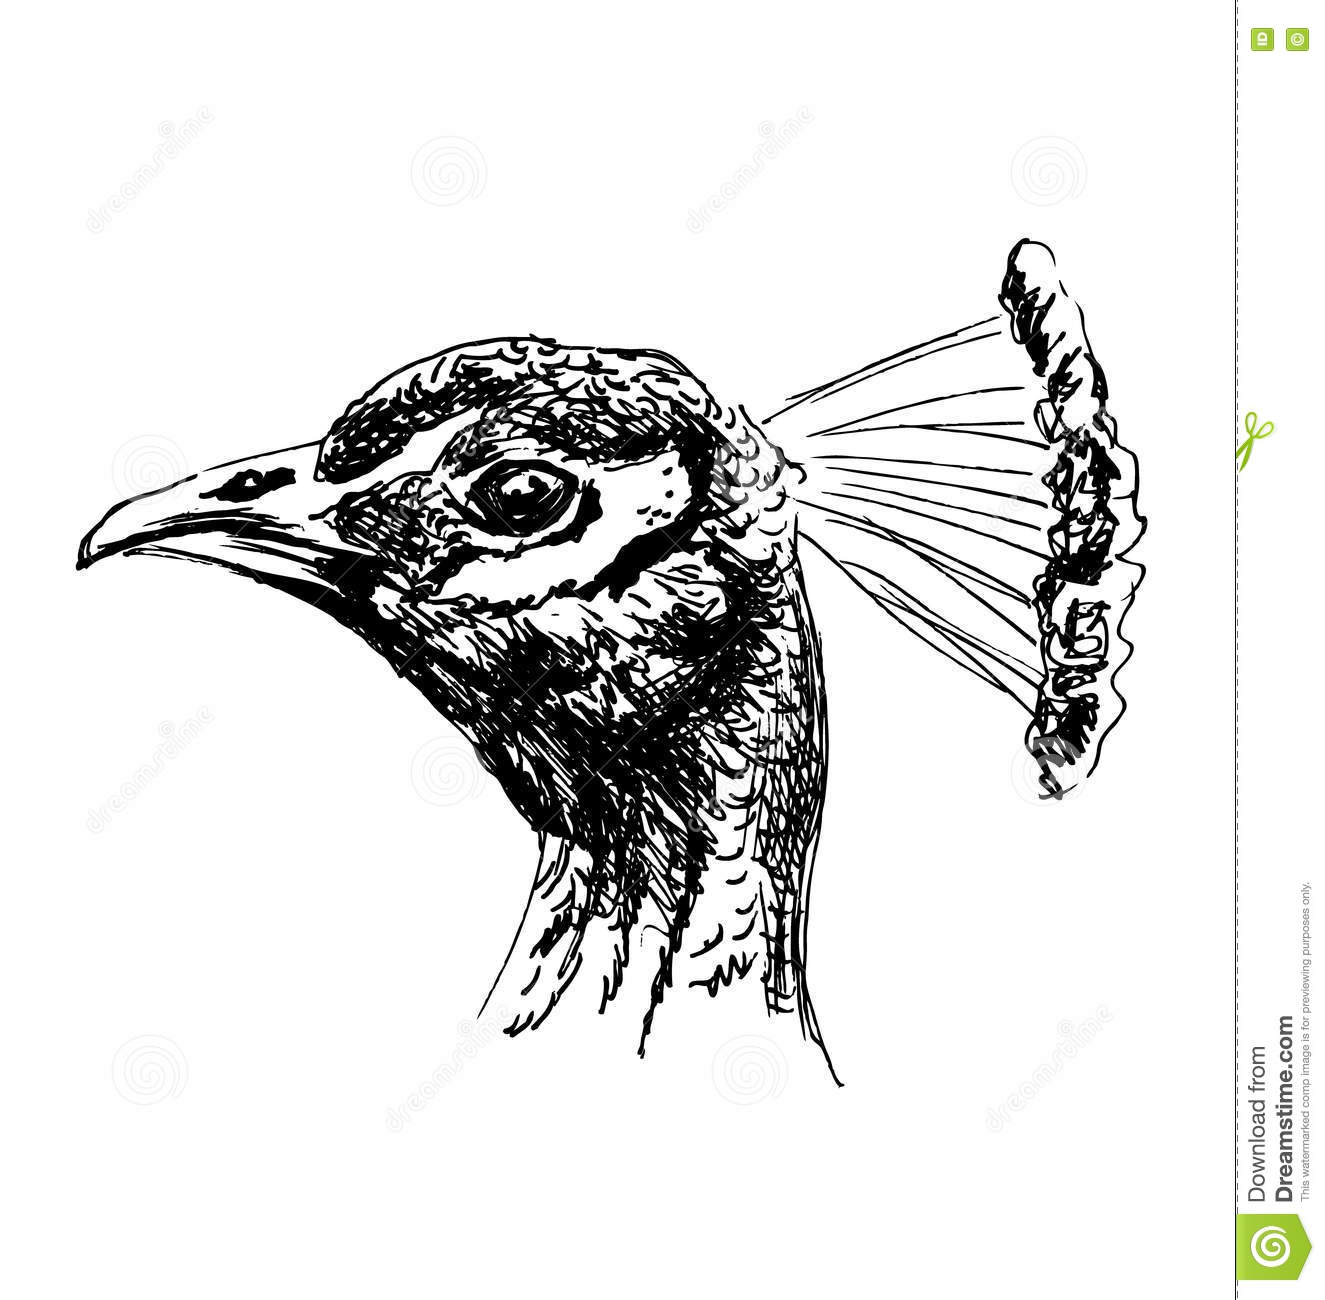 Hand sketch of the head of a peacock